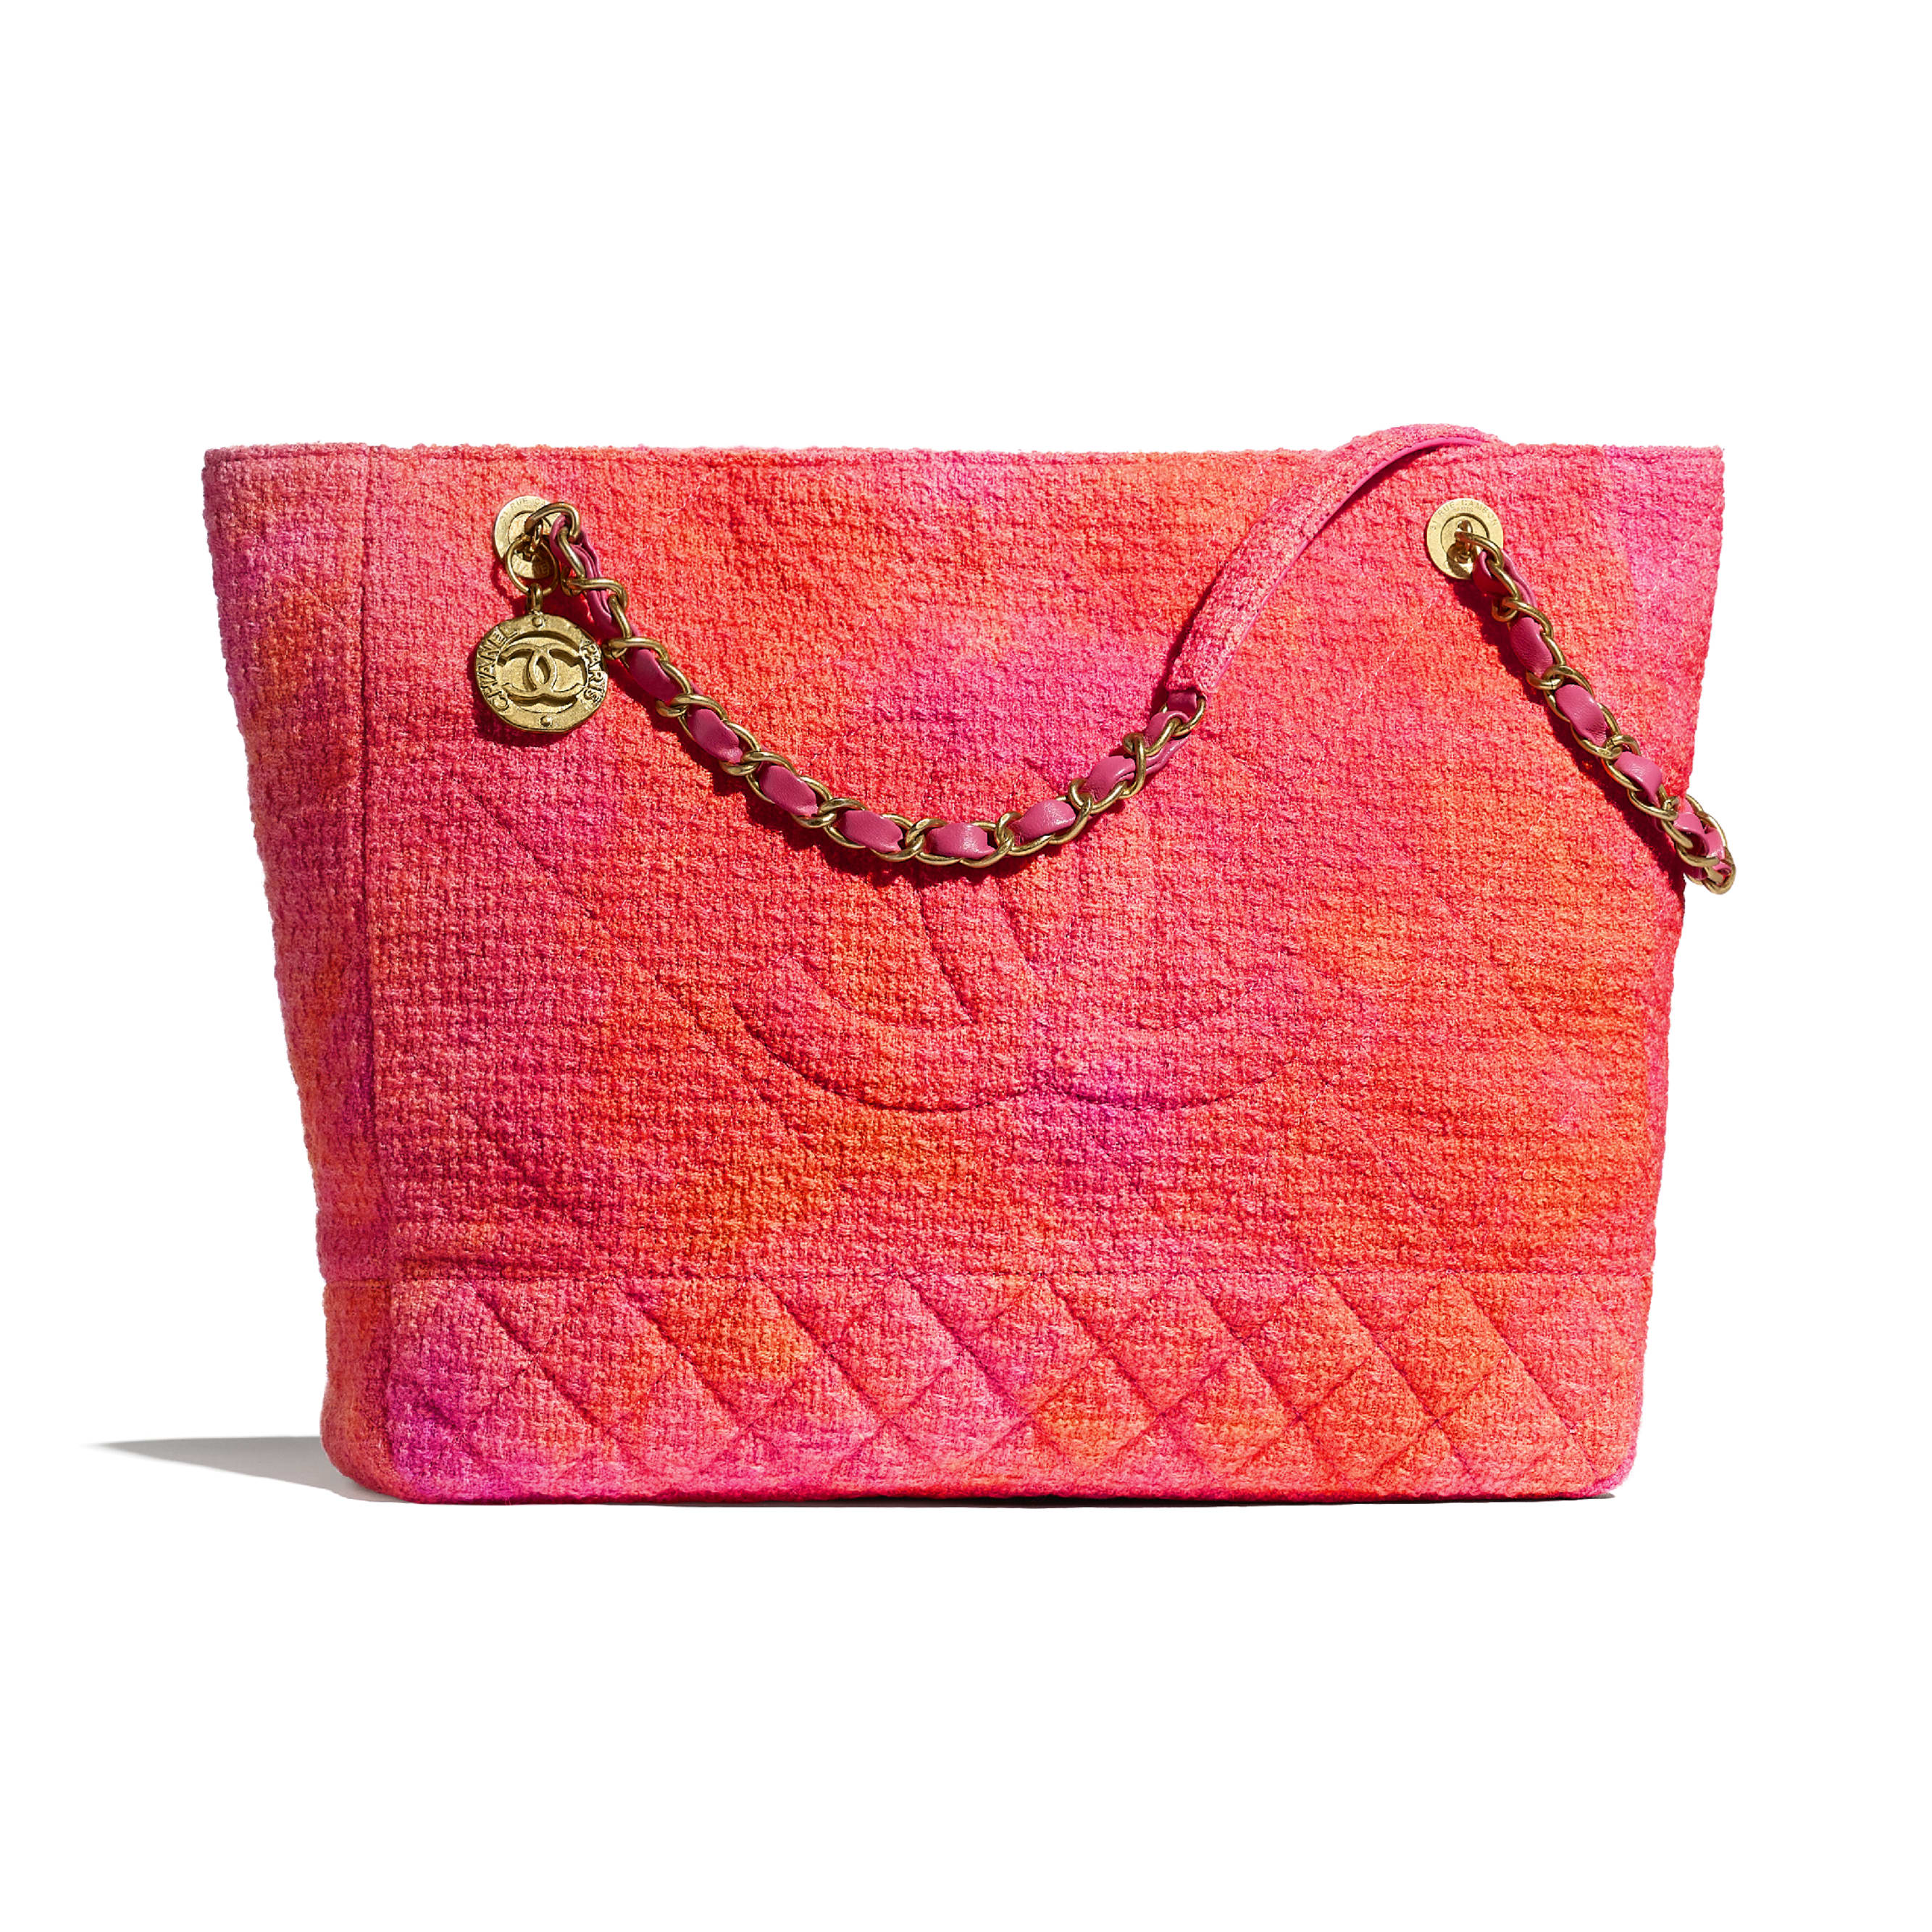 Large Tote - Coral, Pink & Orange - Cotton Tweed & Gold-Tone Metal - CHANEL - Default view - see standard sized version